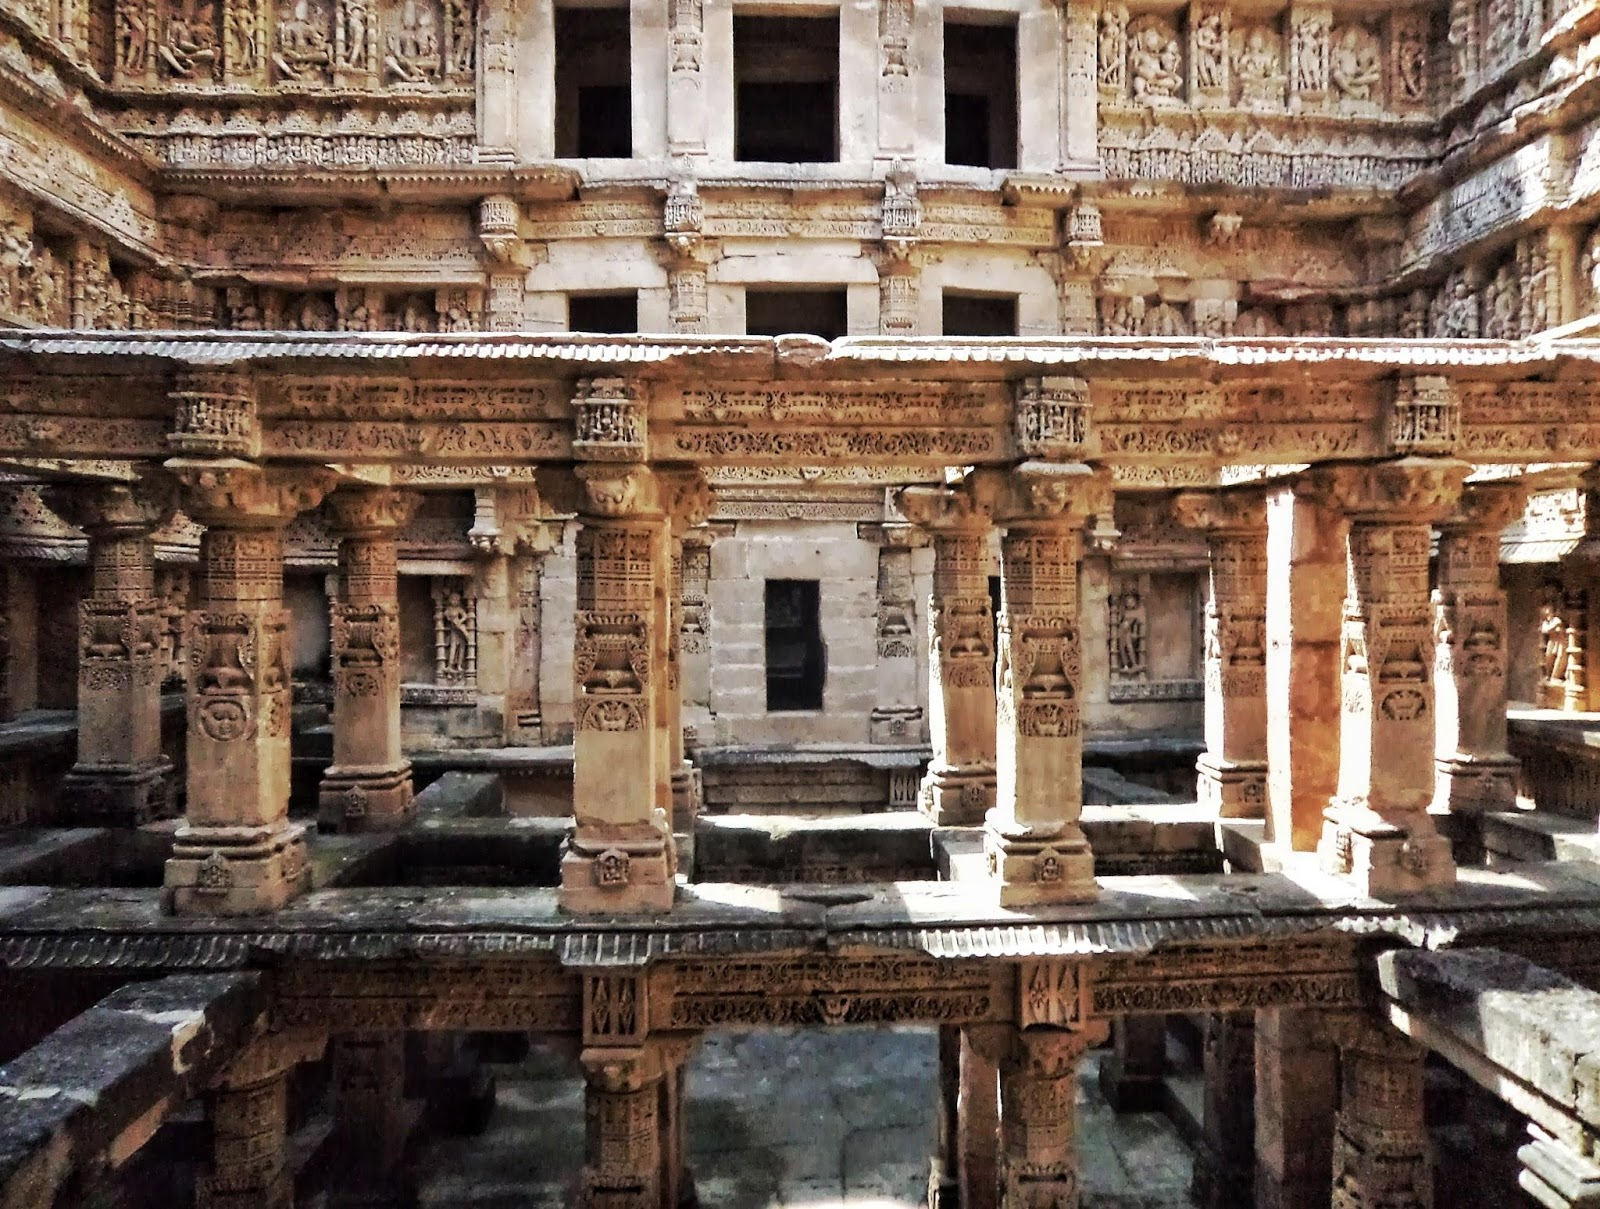 Rani Ki Vav (the Queen's Stepwell), a 2-hour drive from Ahmedabad, is a gorgeous archaeological site that displays the great beauty of complex carvings and proportions. (Image:Rishit VoraviawikimediaCC BY-SA 4.0)